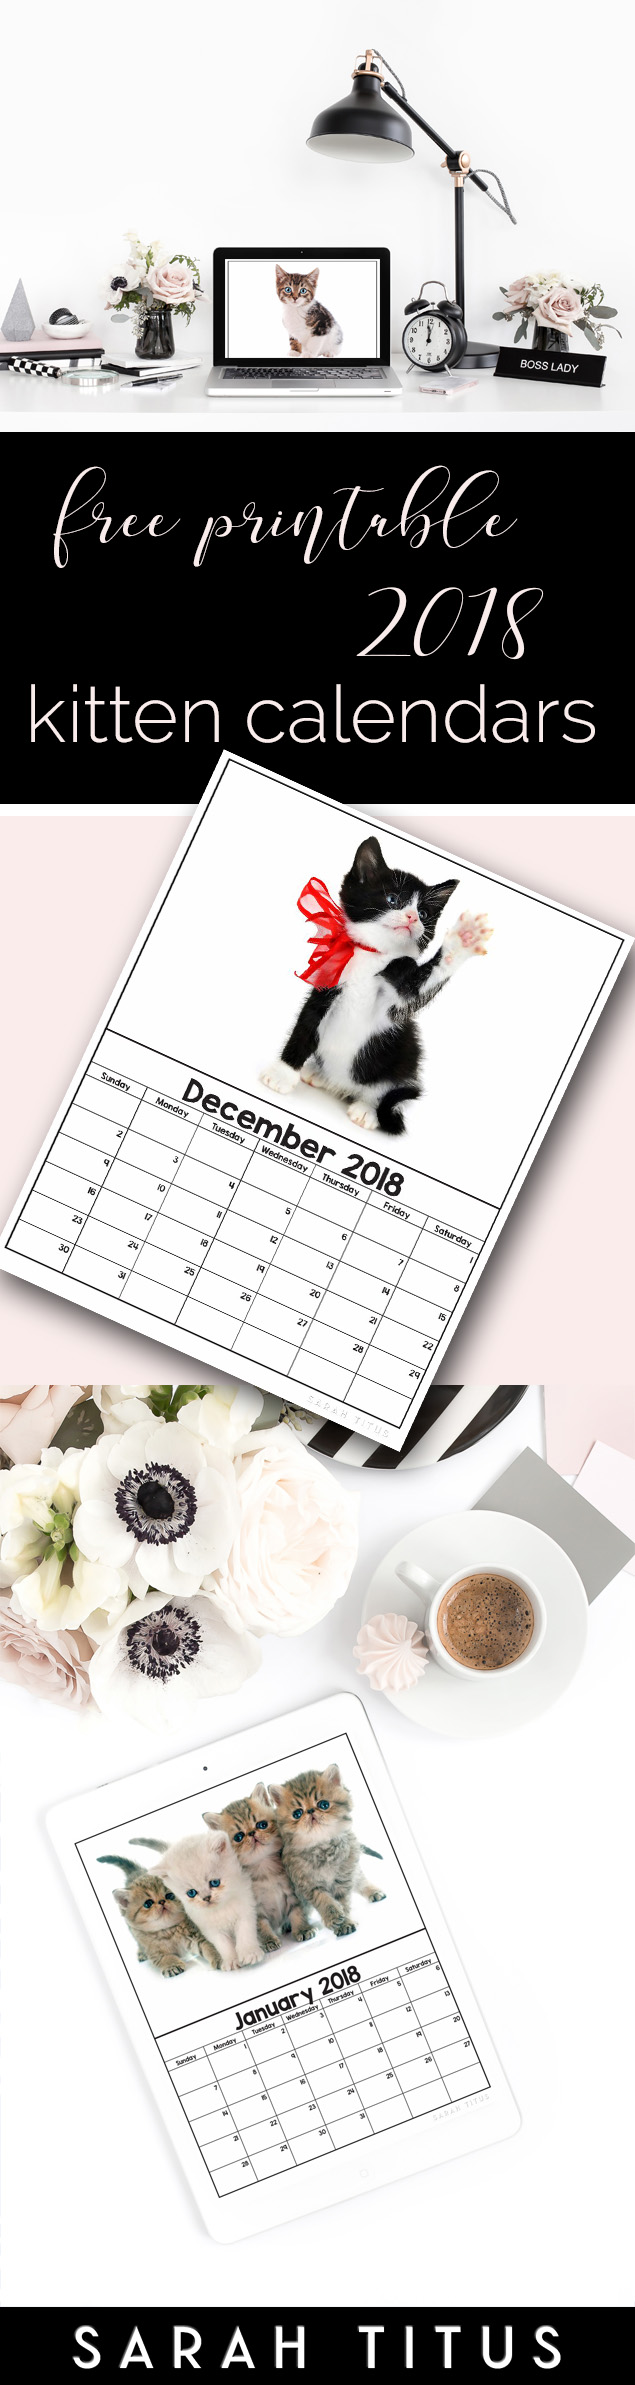 Free Printable 2018 Kitten Calendars! Use them for menu planning, homeschooling, blogging, or just to organize your life. #organize #organization #freeprintables #freeprintablecalendars #2018calendars #free2018calendars